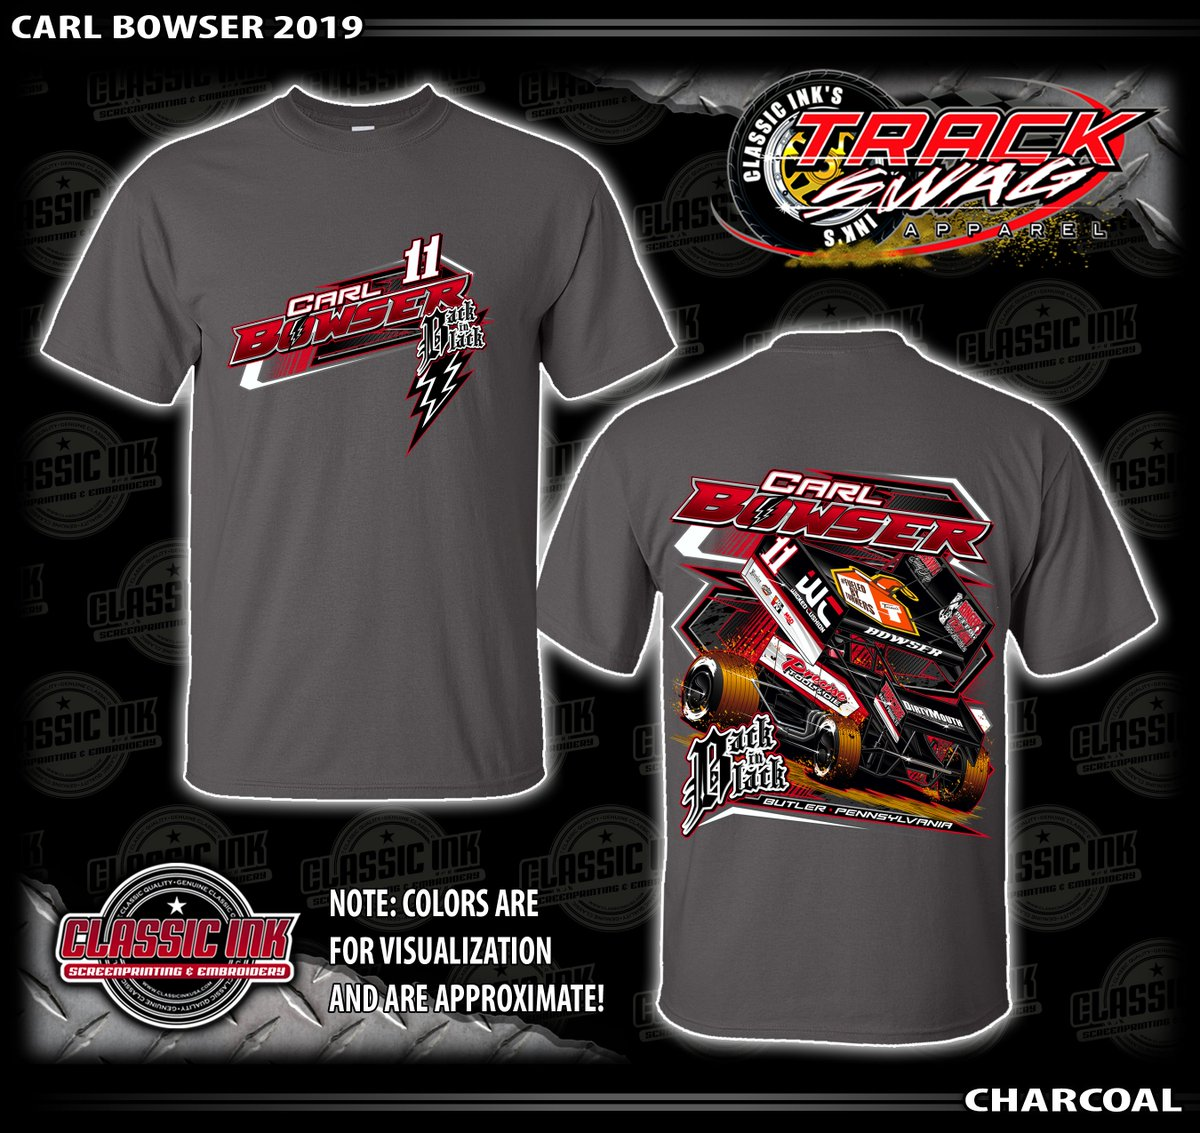 87b94ada876 Limited Edition Back in Black tee in three colors, all sizes (YS - 4XL),  all available online today at http://CarlBowser.com and at the track soon.